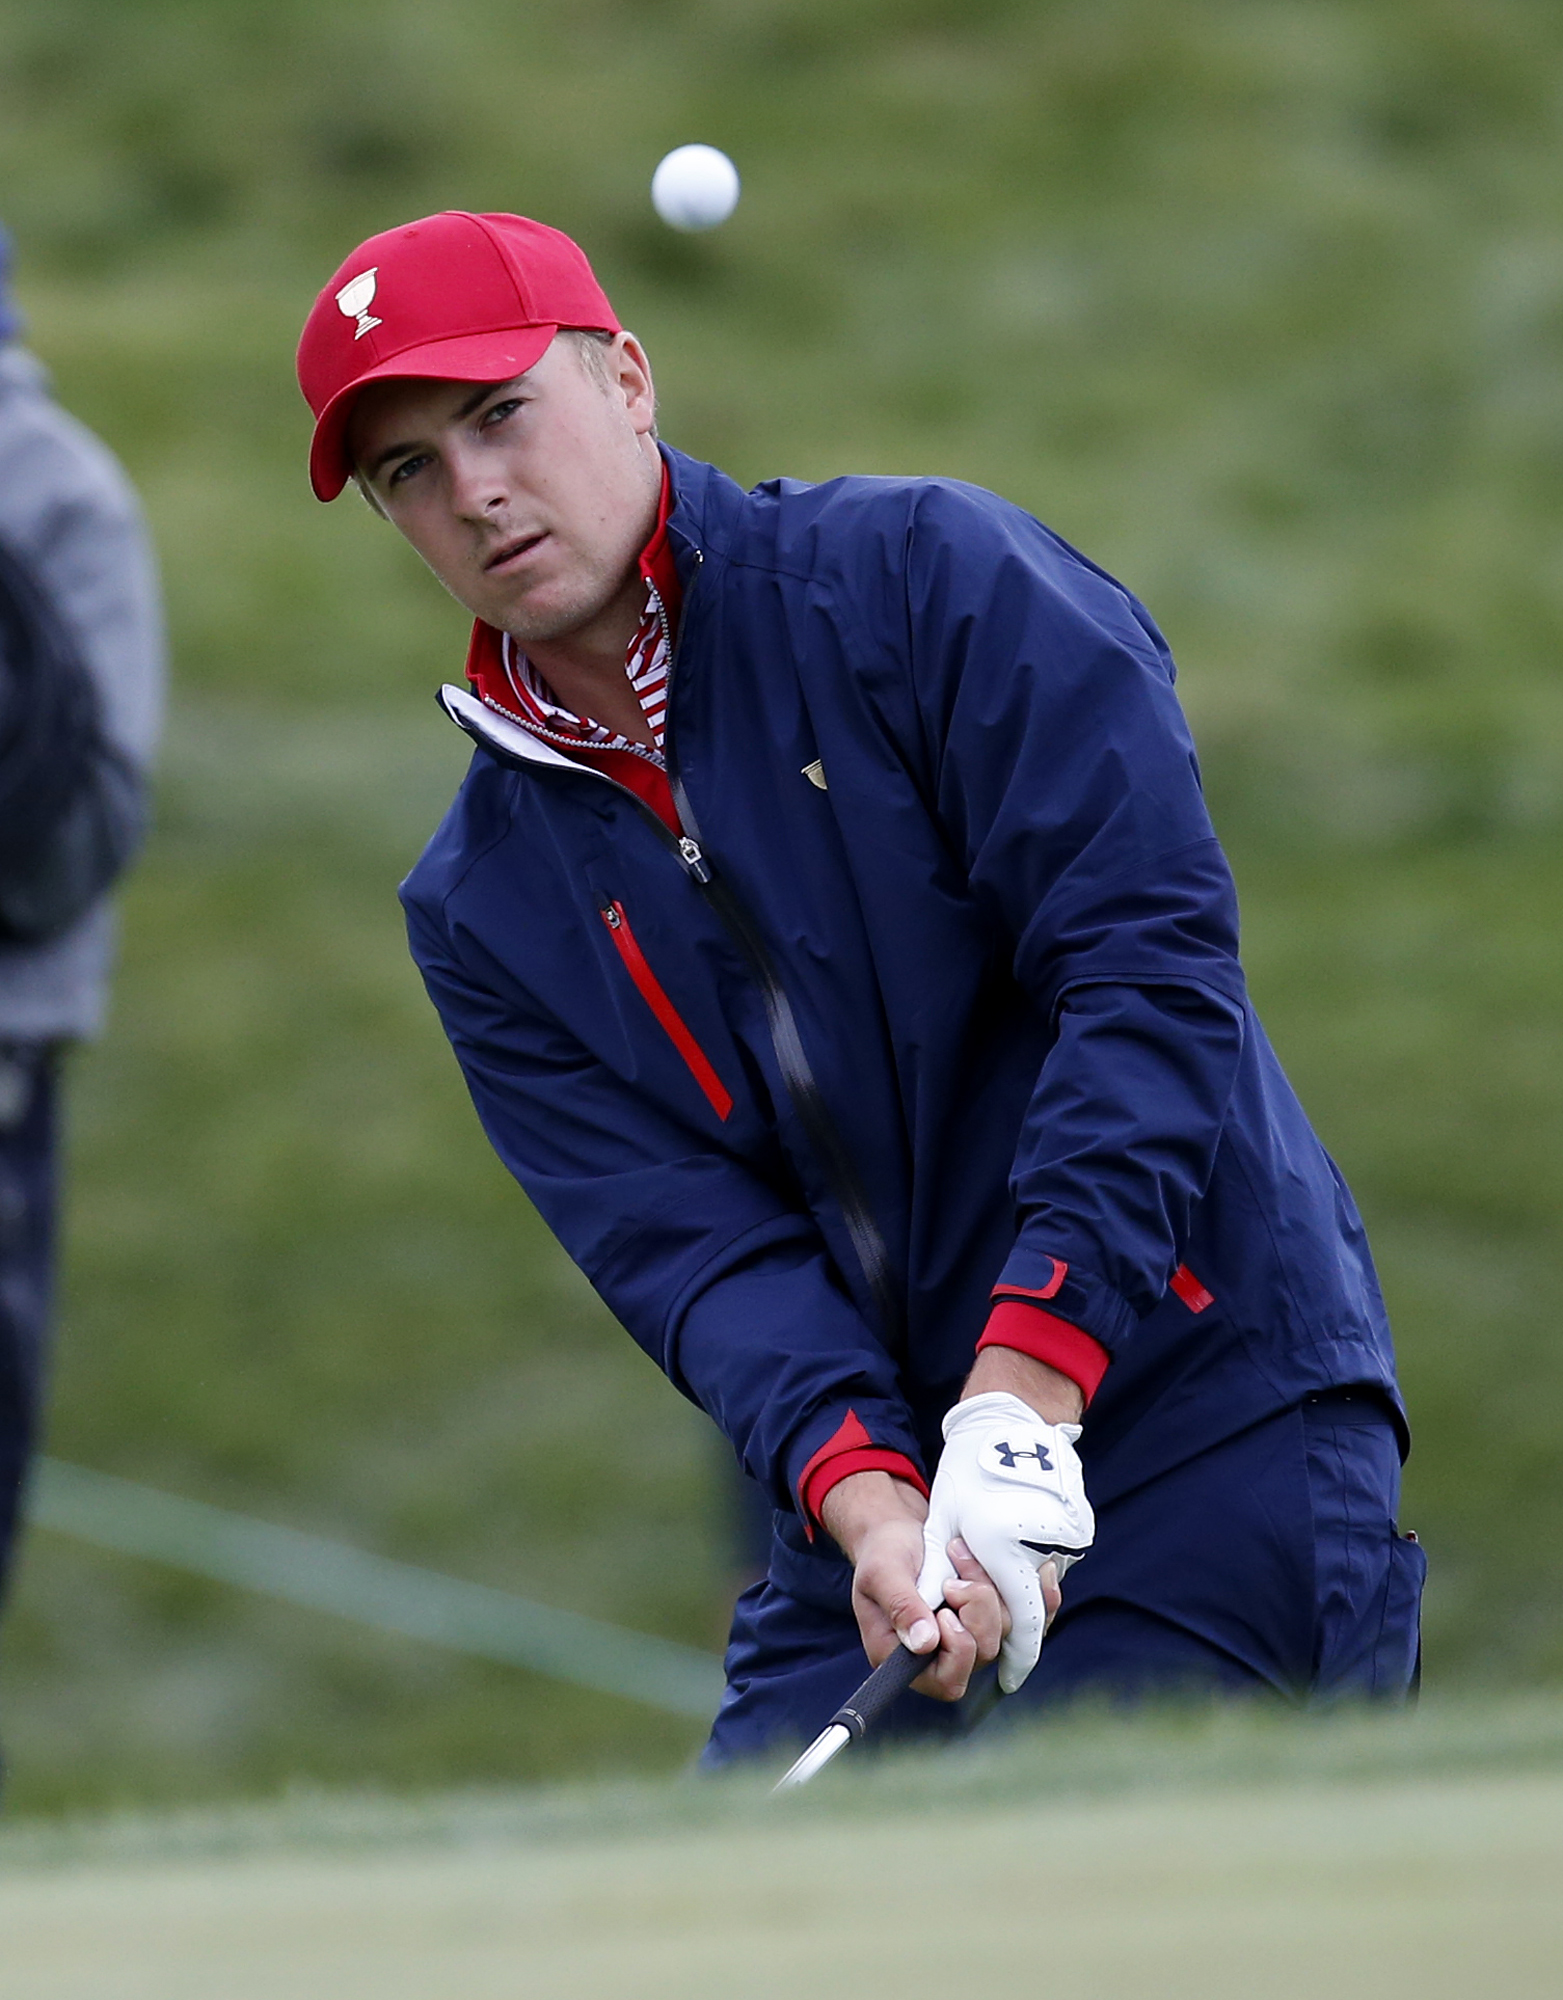 United States' Jordan Spieth plays a chip shot onto the 12th green during his singles match against International team player Marc Leishman of Australia at the Presidents Cup golf tournament at the Jack Nicklaus Golf Club Korea, in Incheon, South Korea, S